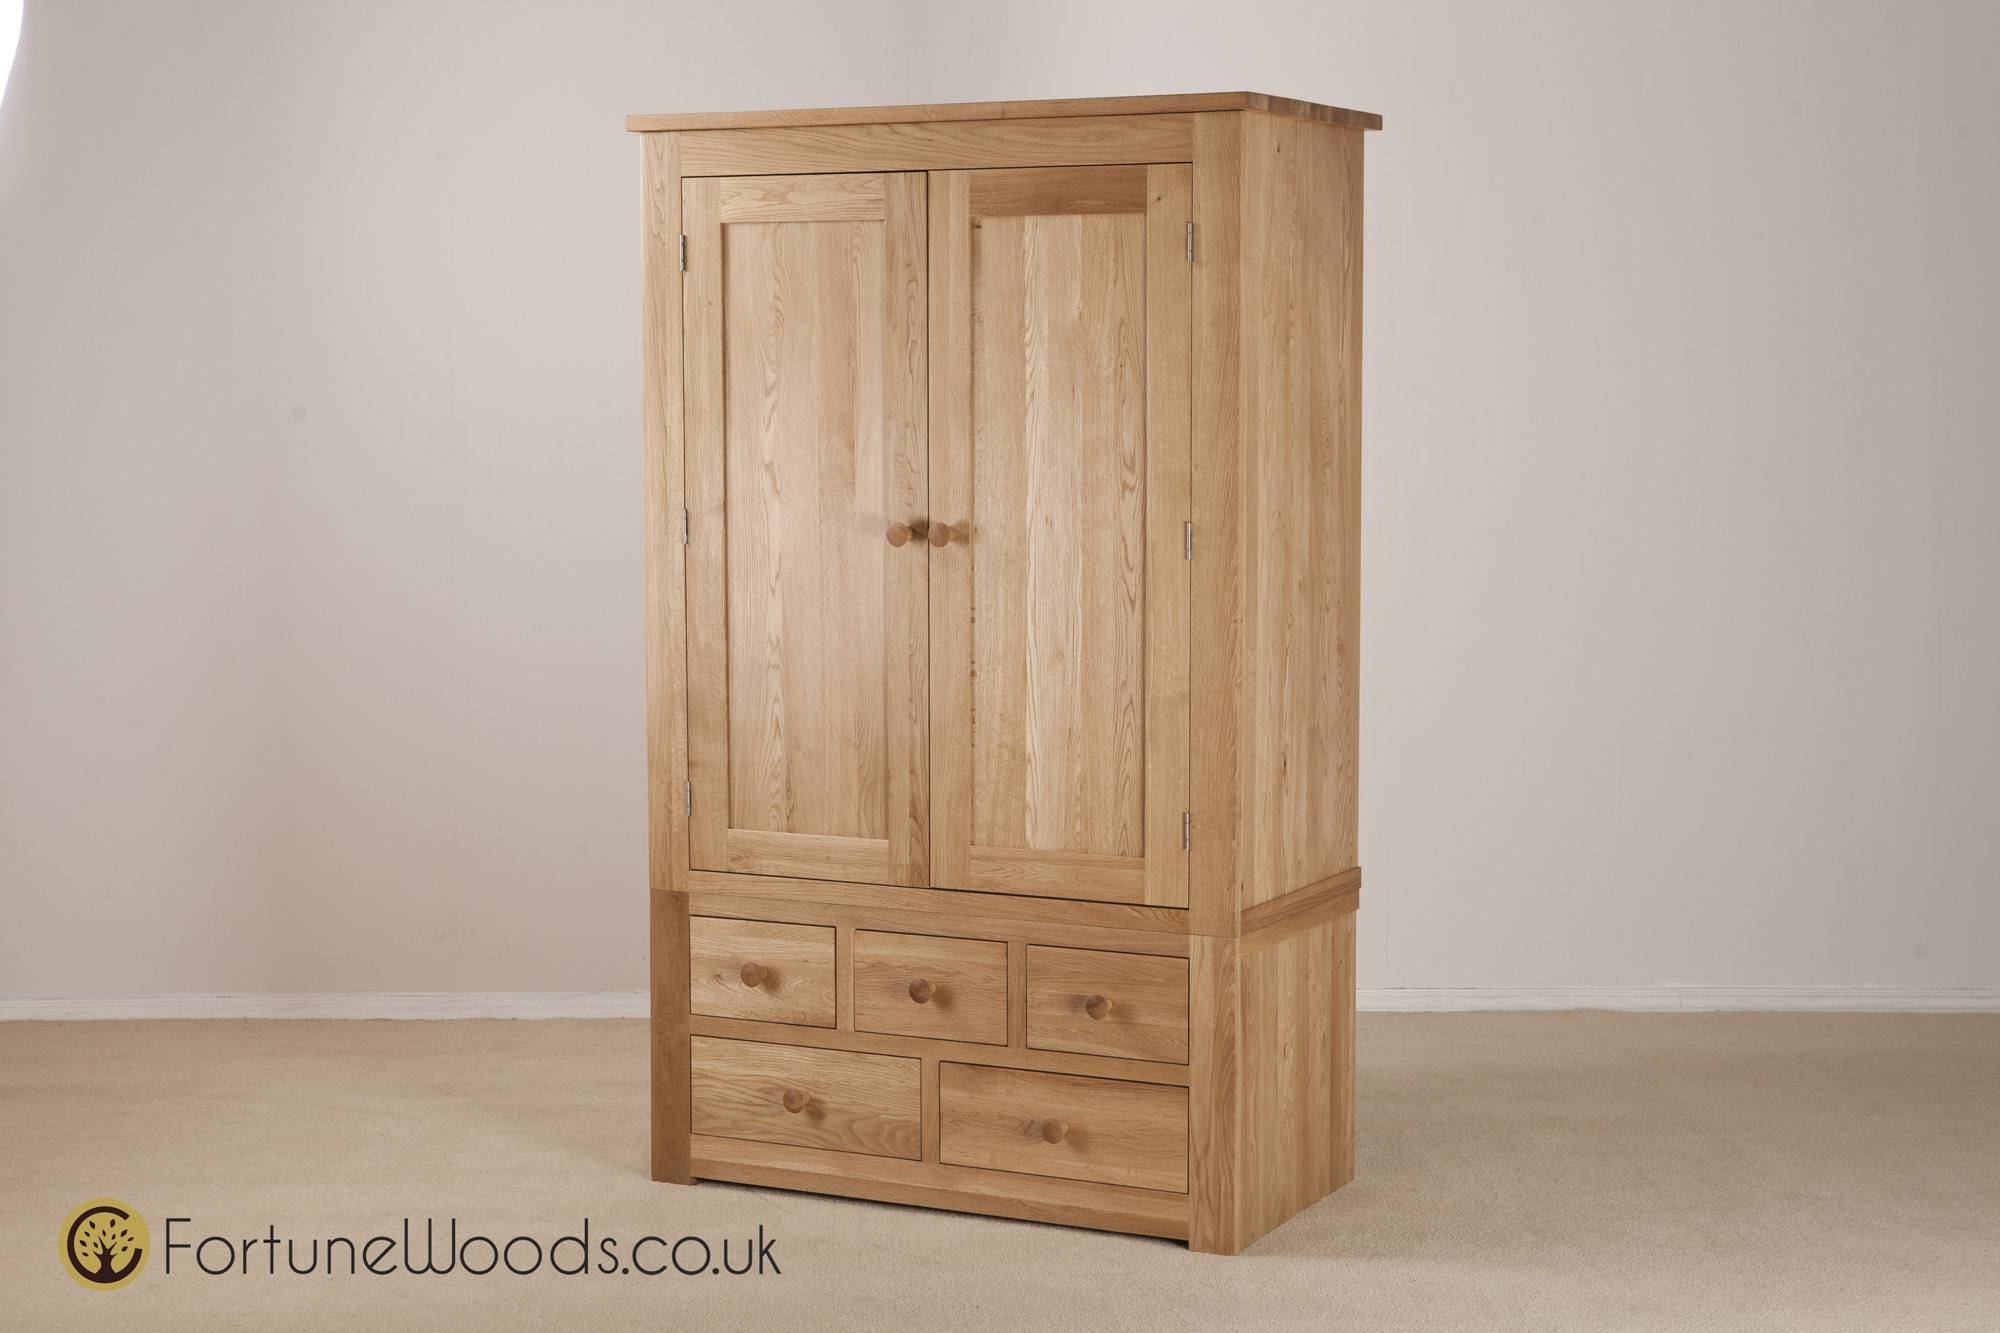 Combi Wardrobe 3 Over2 Drawers From Fortune Woods with regard to Combi Wardrobes (Image 4 of 15)